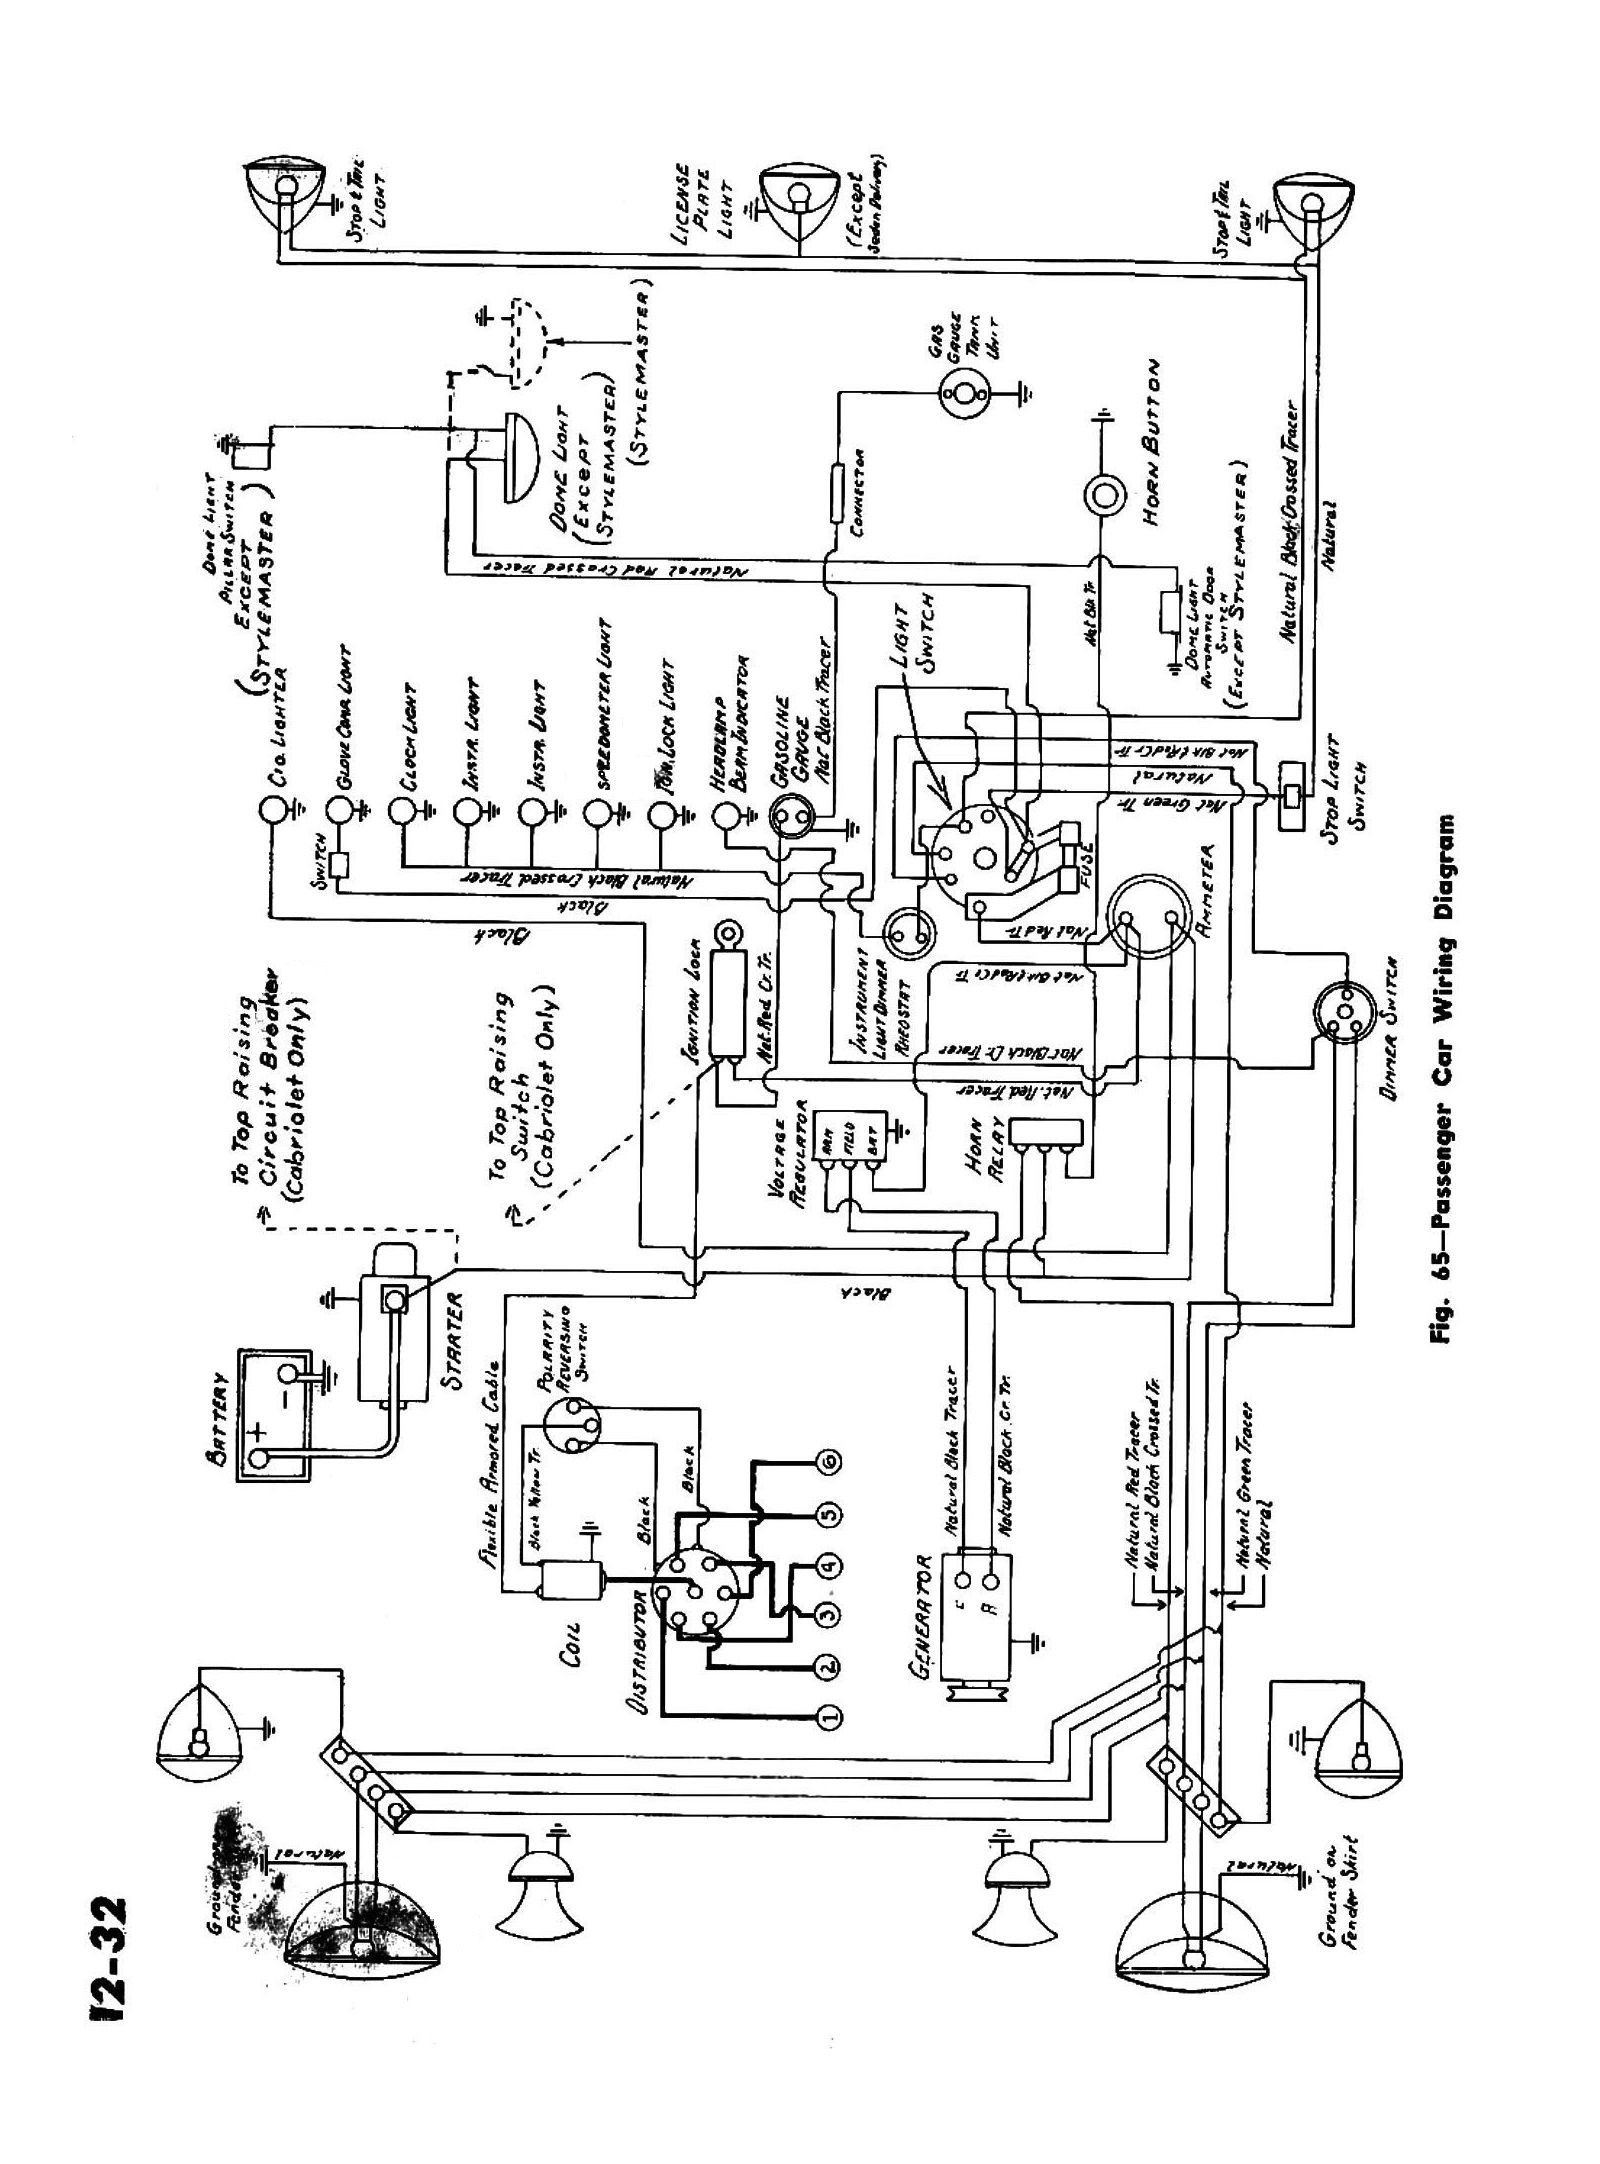 45car chevy wiring diagrams 1953 Ford Car Wiring Diagram at crackthecode.co